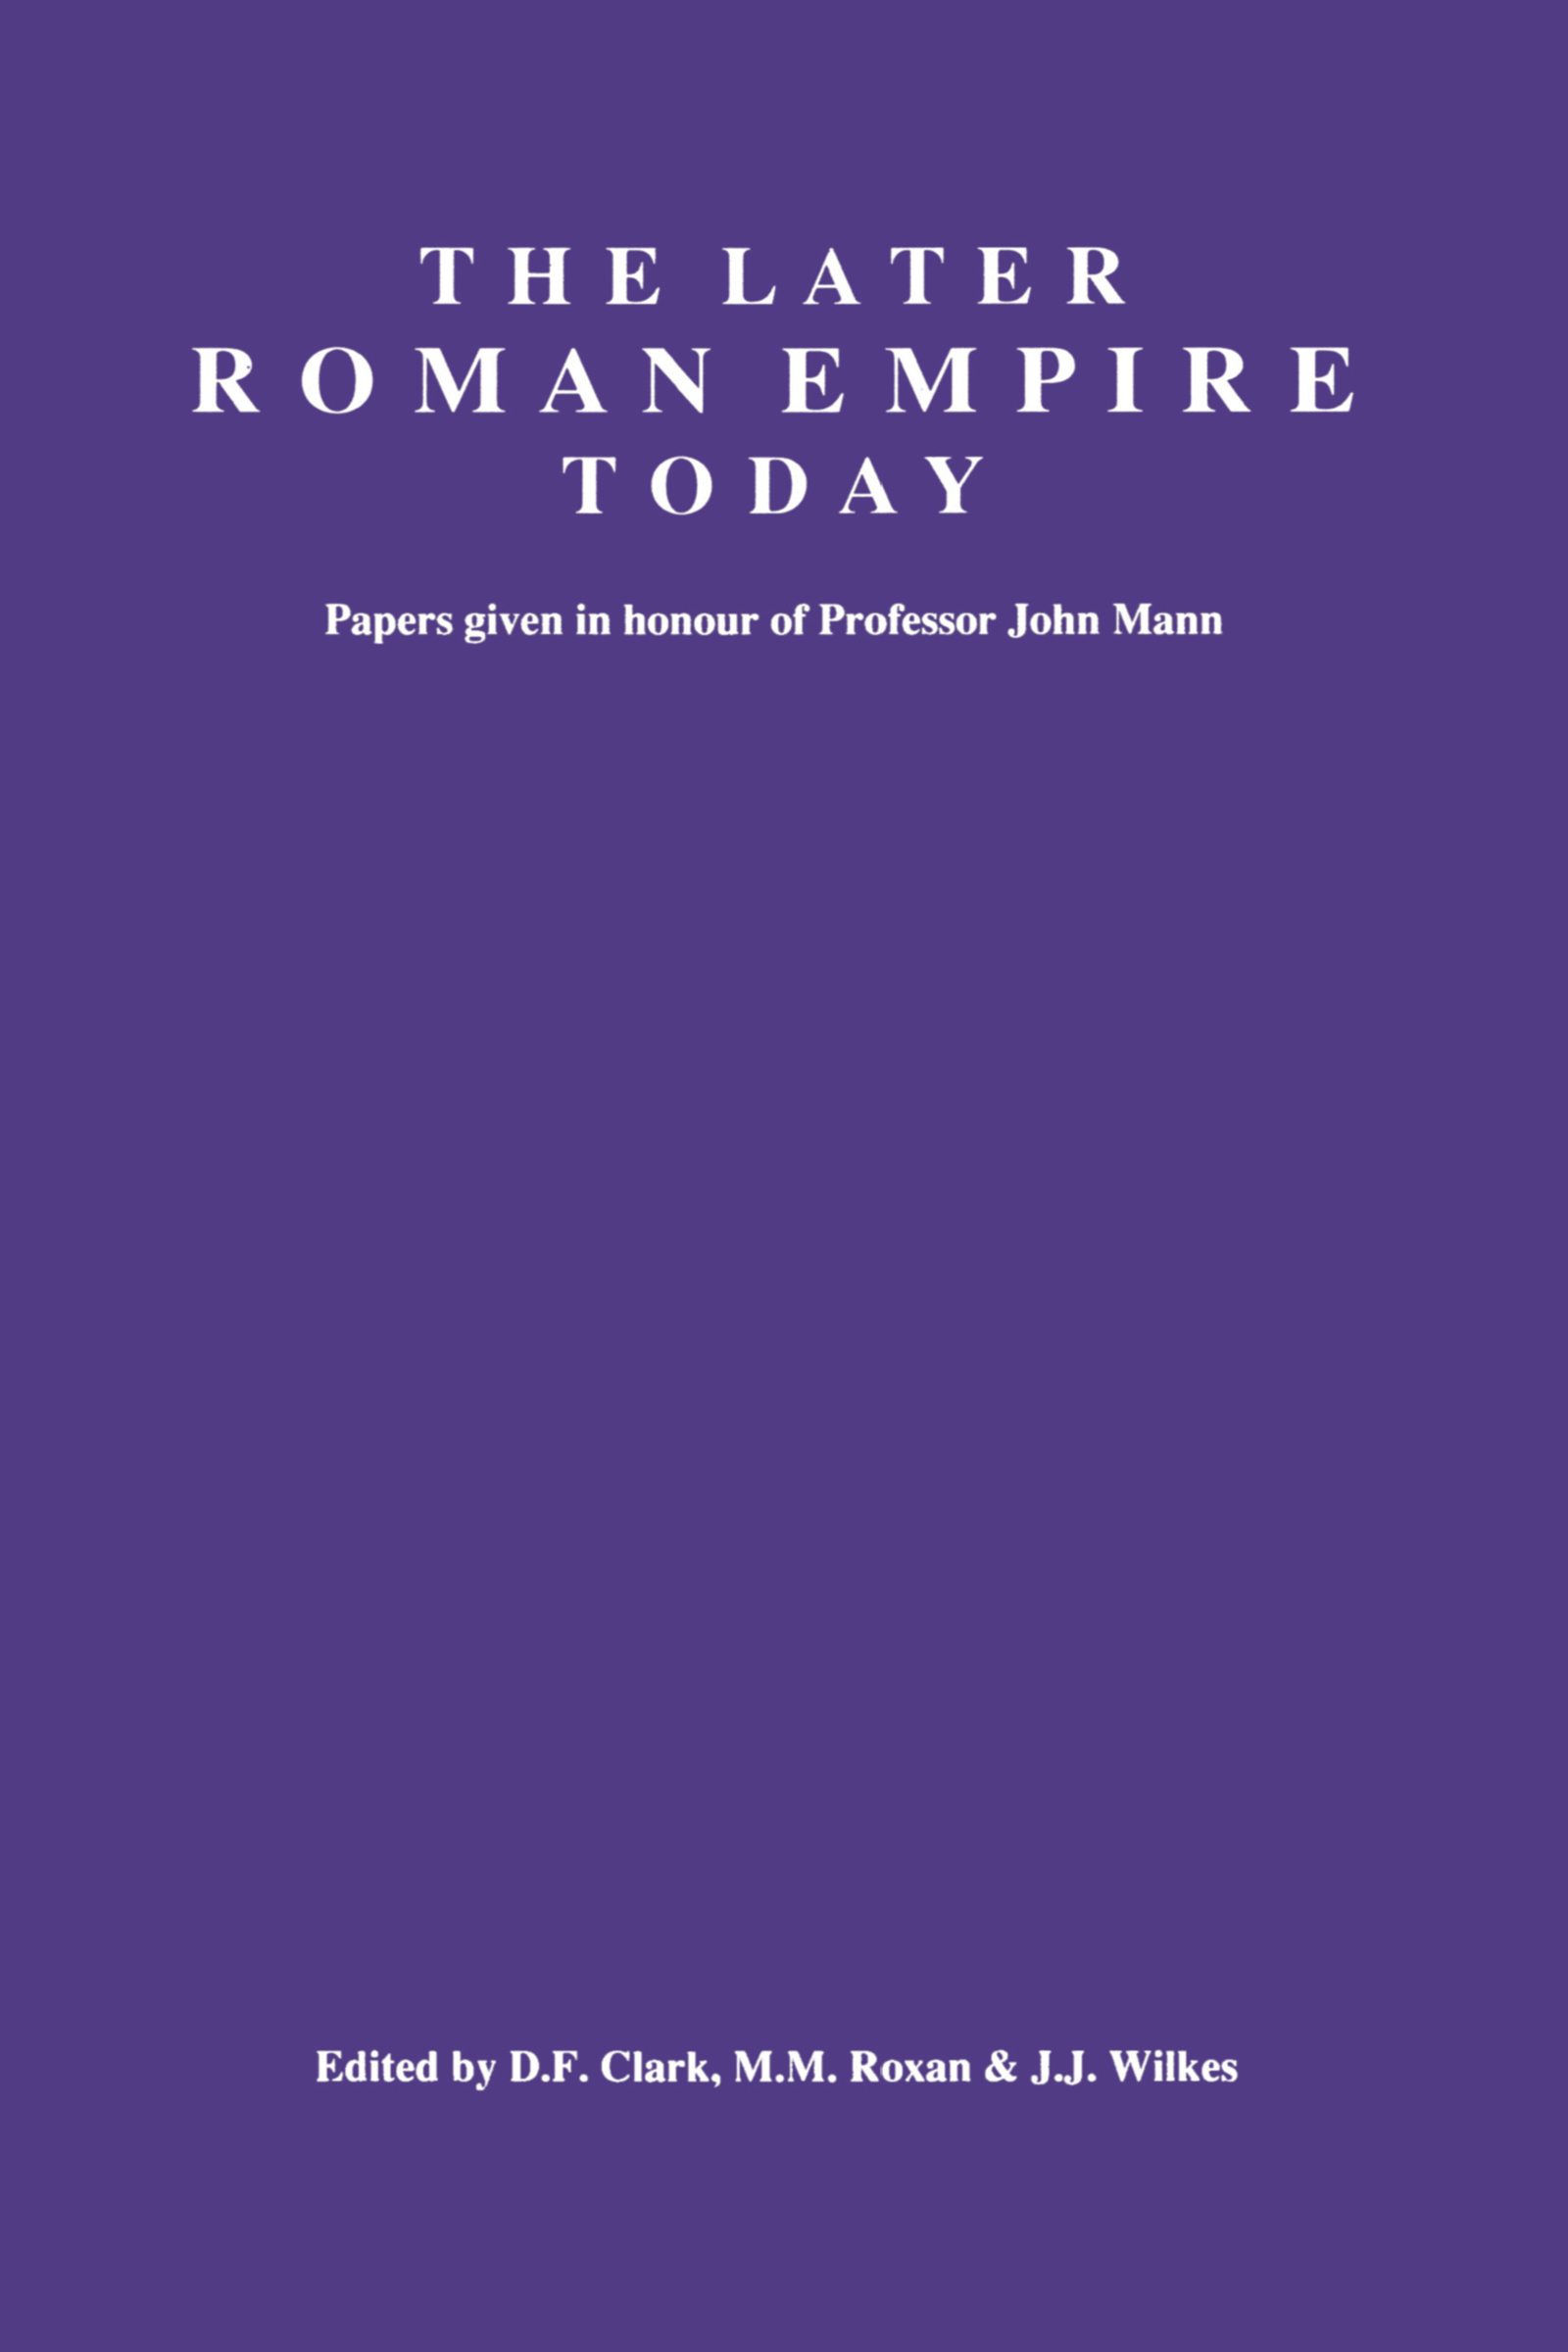 The Later Roman Empire Today: Papers given in honour of Professor John Mann, 1st Edition (Paperback) book cover